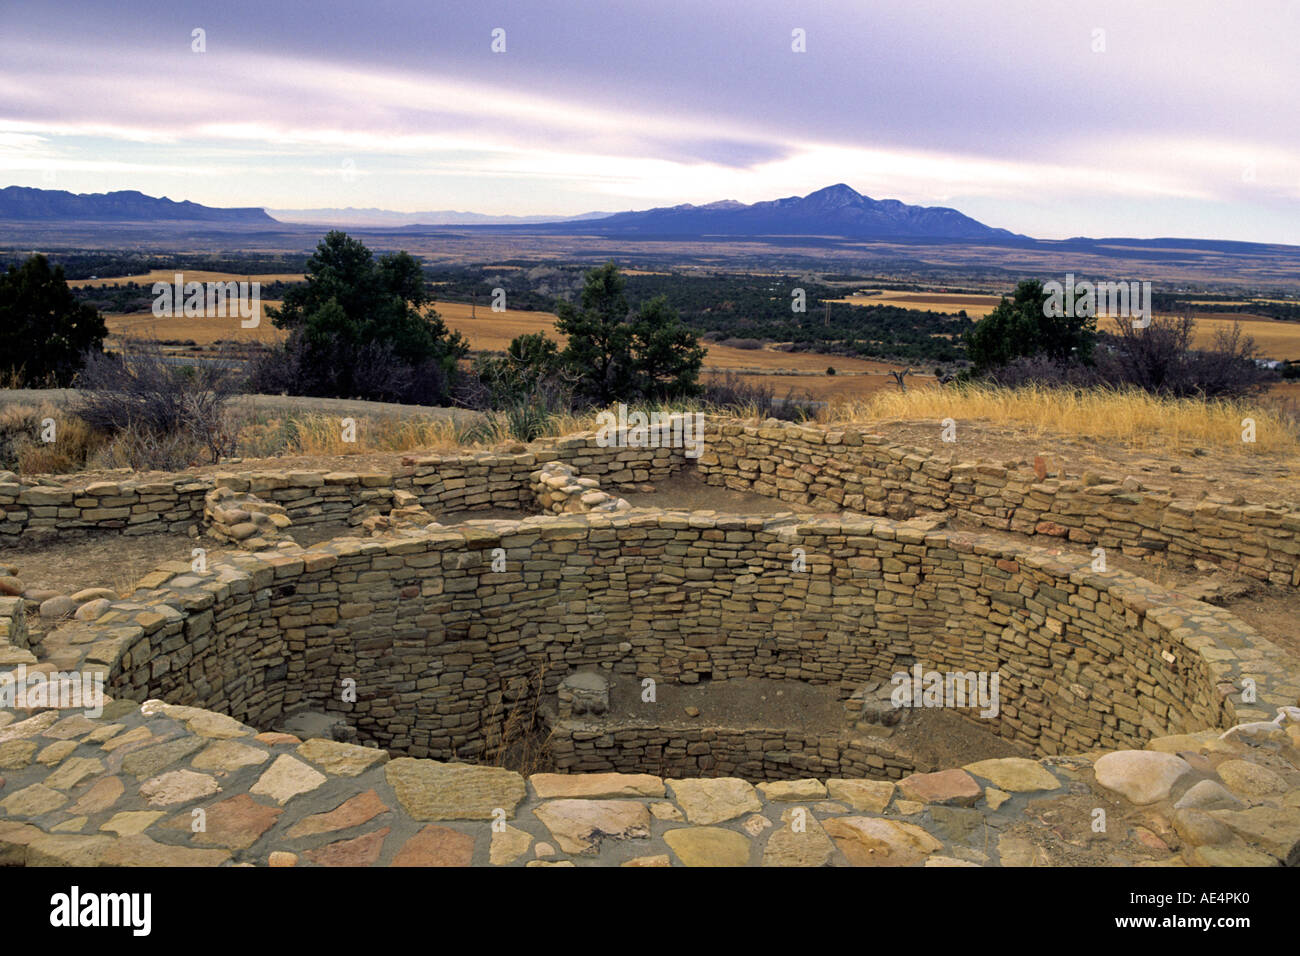 Kiva of Escalante Pueblo overlooks Sleeping Ute Mountain at Anasazi Heritage Center, southwest Colorado. - Stock Image